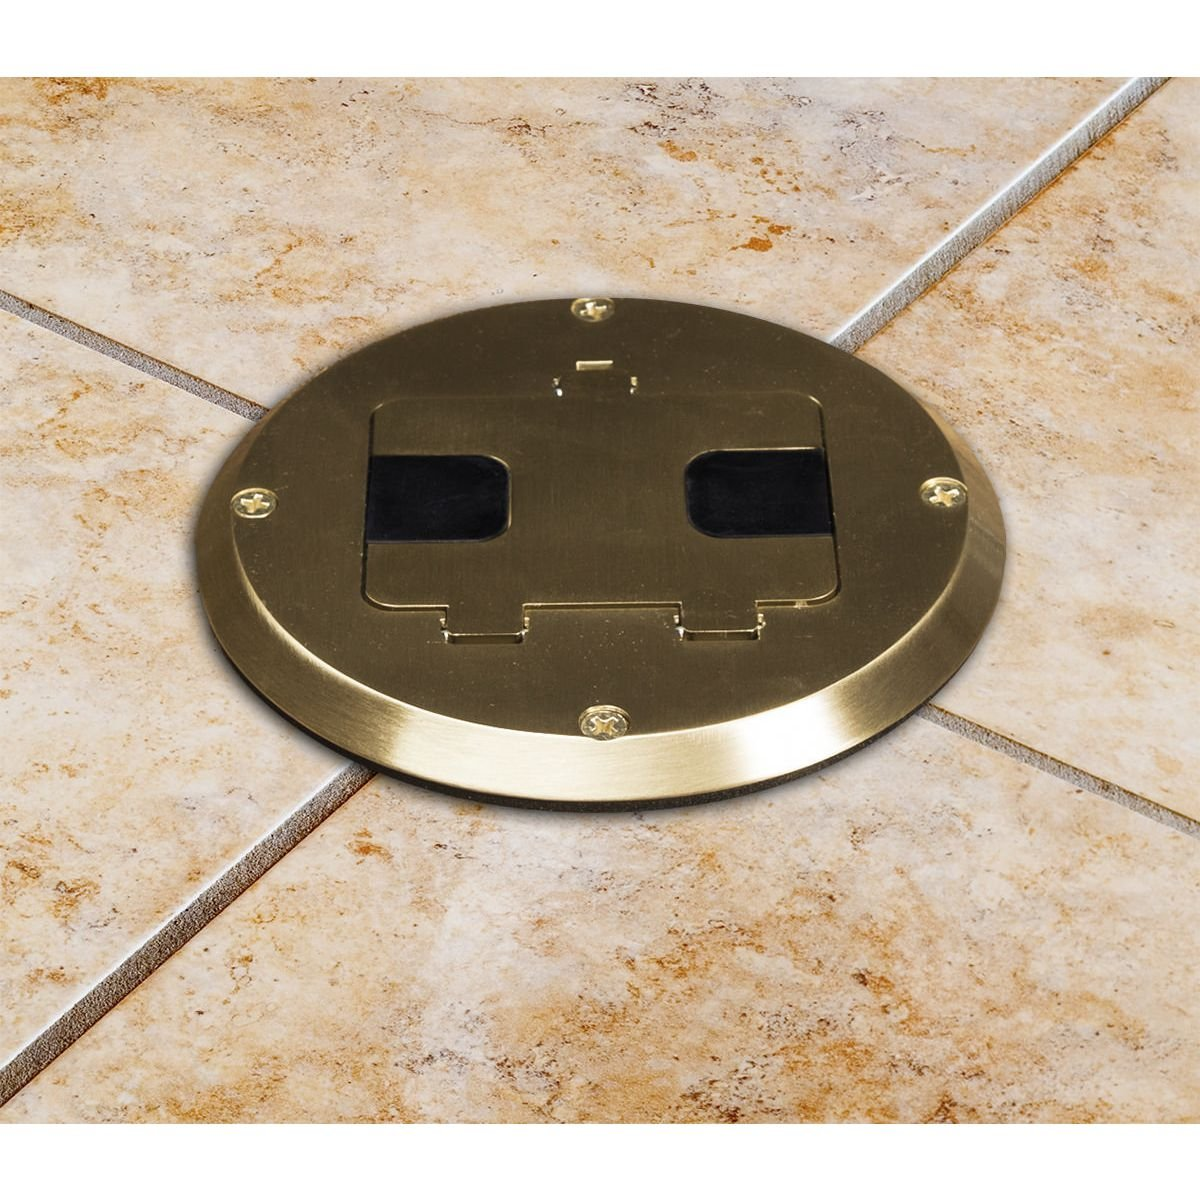 Hubbell 6239bp Concealed Receptacle Floor Box Kit Brass Finish Platecover Housing Assembly Google On Cable To Cat5 Wall Plate Wiring Electric Plugs